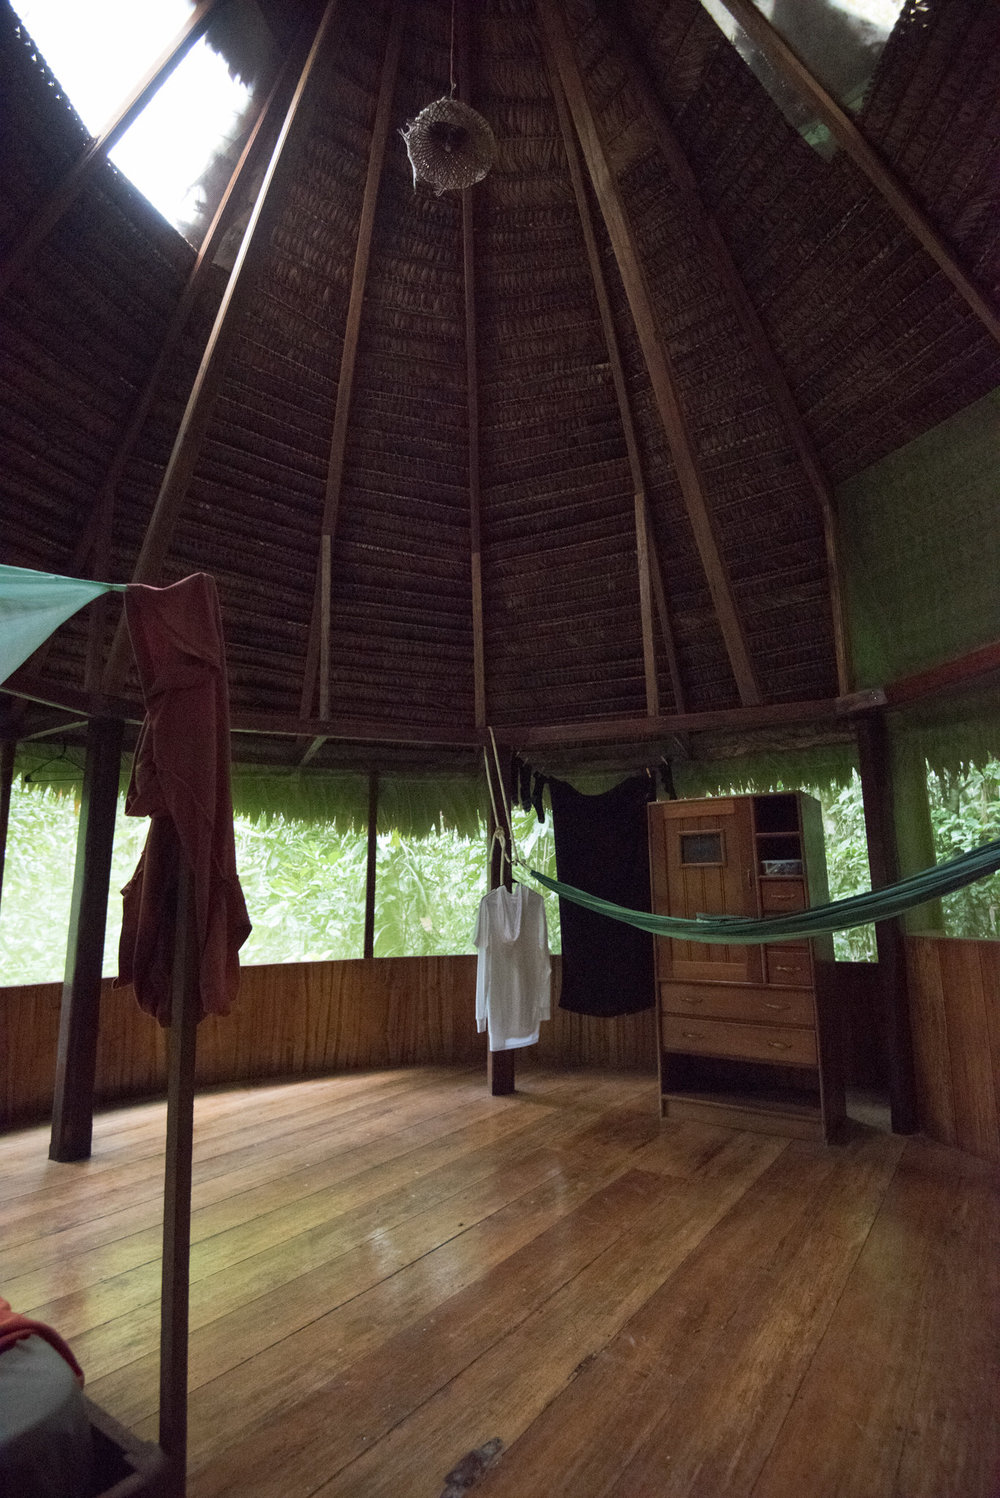 Rainforest Healing Center Peru by Dave Blake Photographer (171-peru).jpg